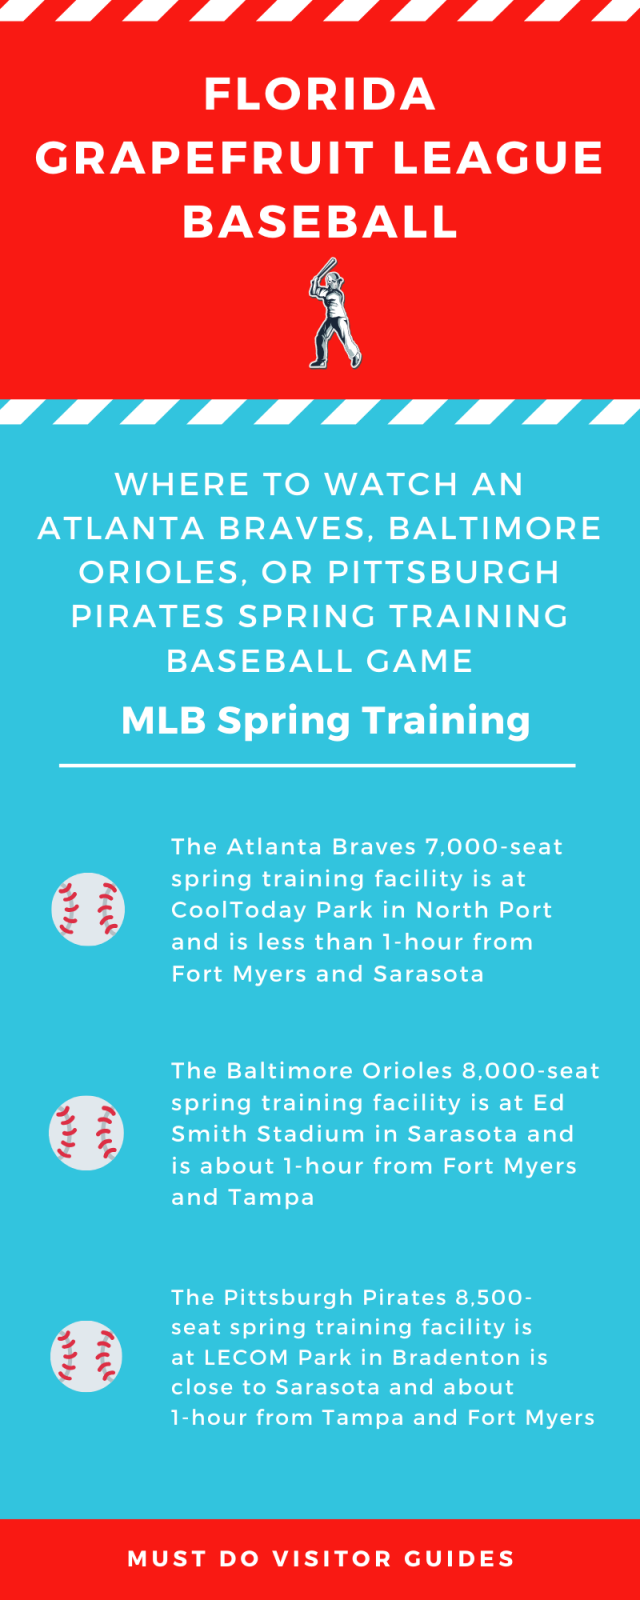 Florida Grapefruit League Baseball. Where to Watch an Atlanta Braves, Baltimore Orioles, or Pittsburgh Pirates Spring Training Baseball Game Infographic. MLB Spring Training. Must Do Visitor Guides | MustDo.com